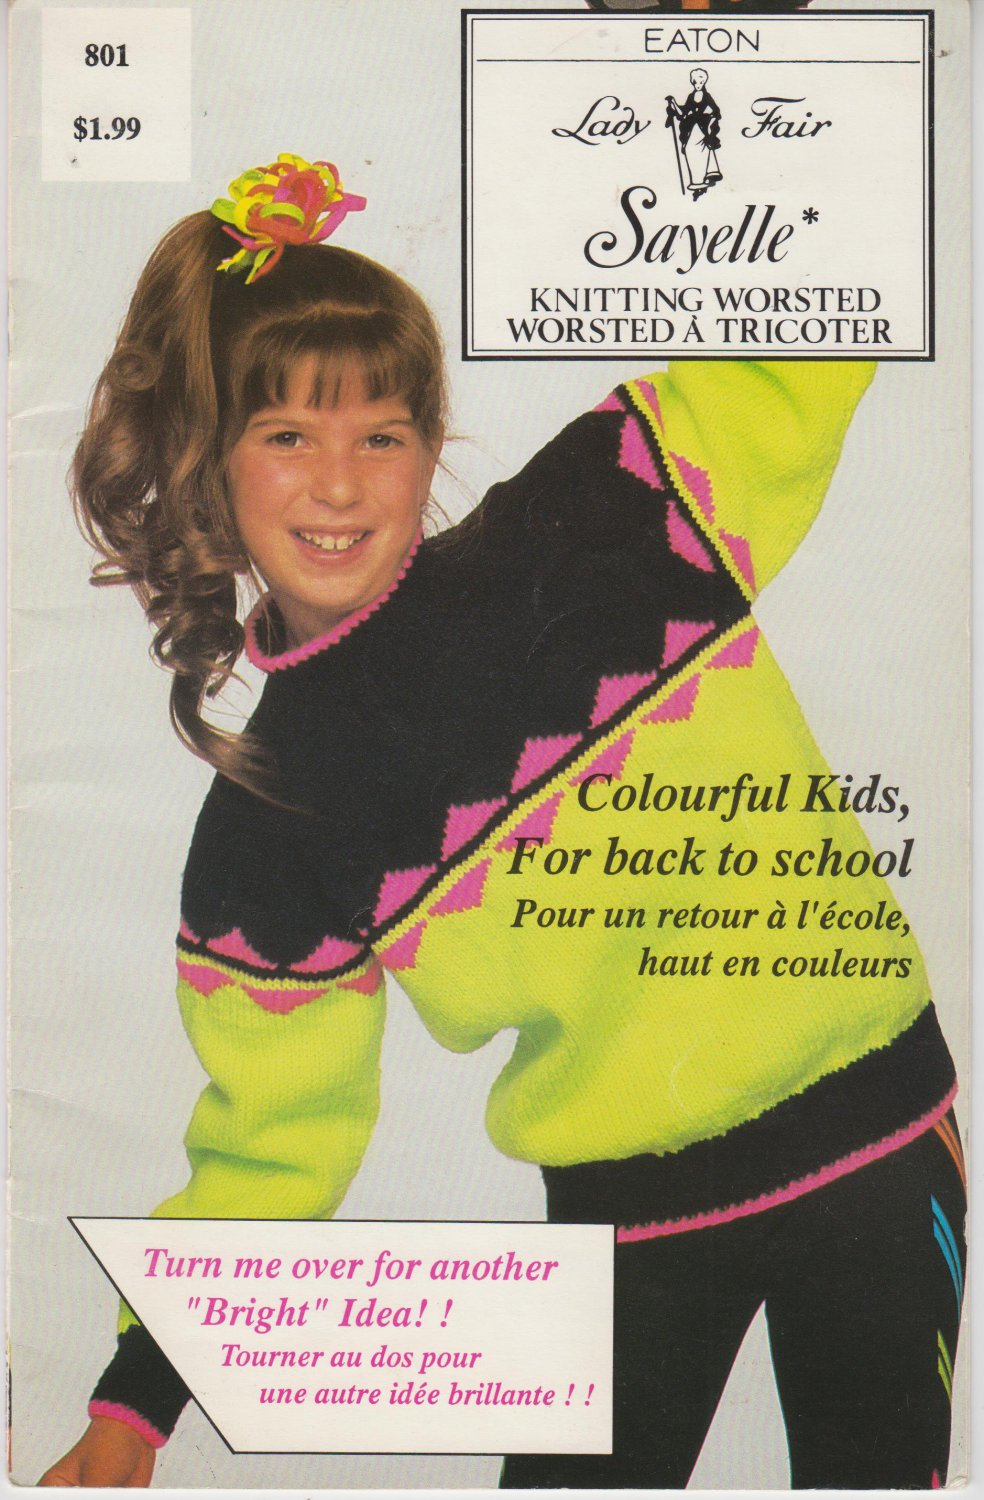 Eaton Lady Fair Pattern to Knit Childrens Neon Color Sweater in Sizes 6 to 10